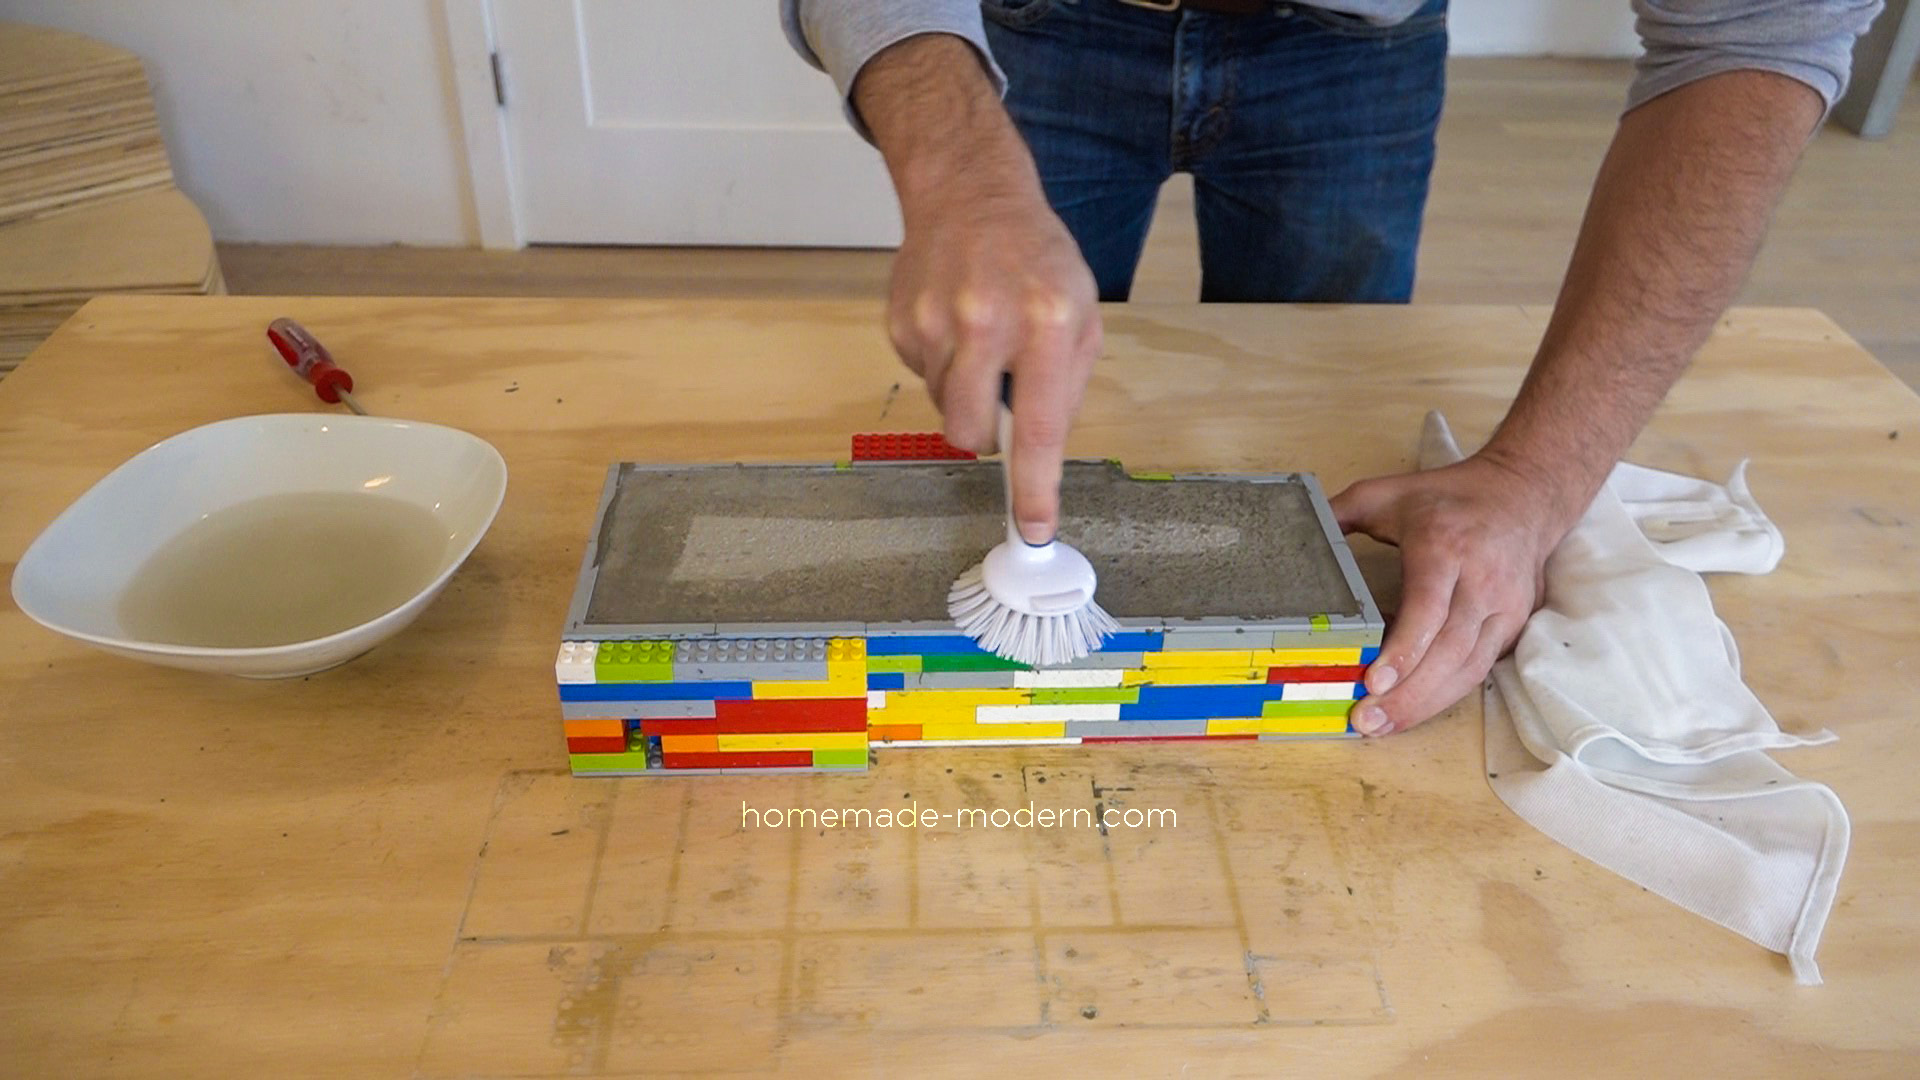 This DIY concrete backsplash was made using Lego bricks to form concrete. The Lego bricks were not damaged during this process. For more information on this project and on DIY concrete countertops go to HomeMade-Modern.com